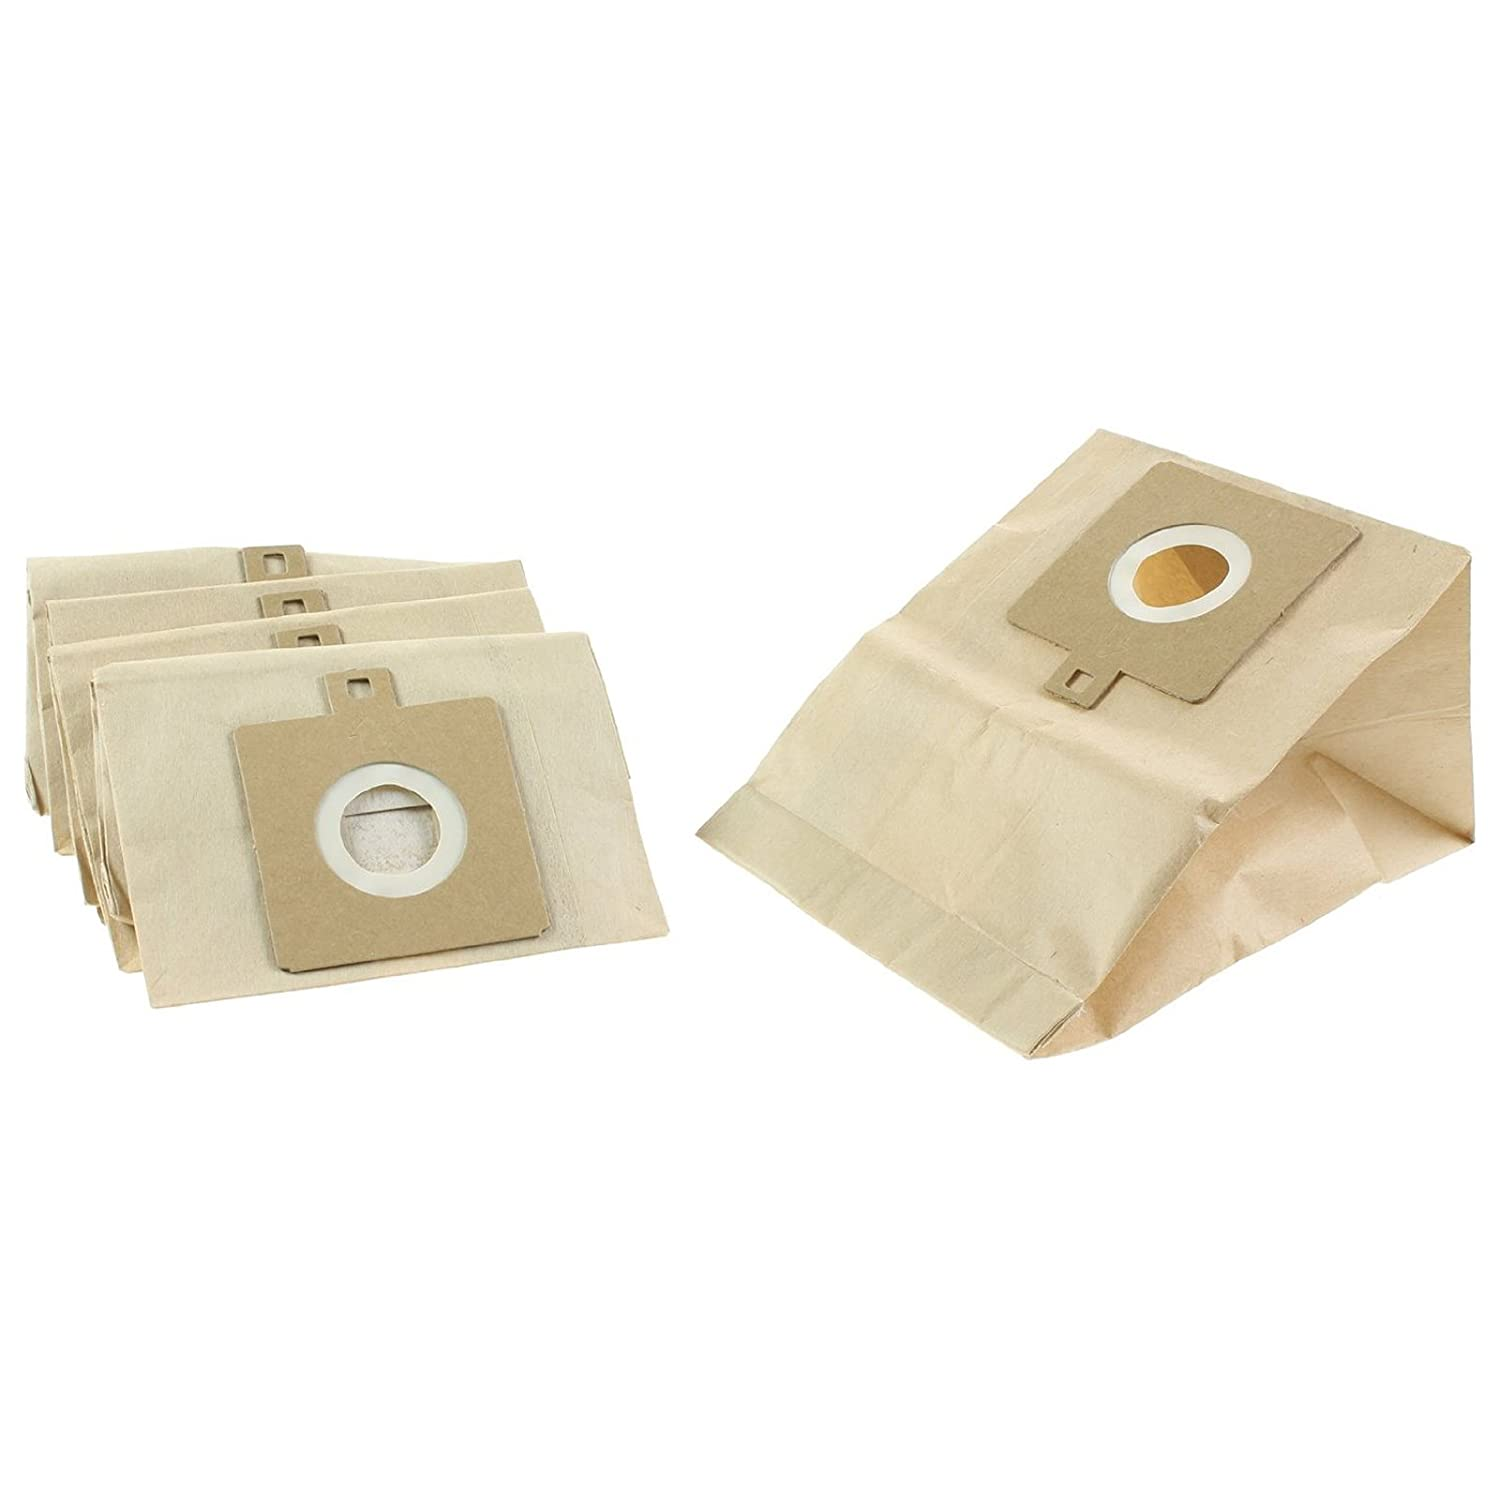 Qualtex Vacuum Cleaner Dust Bags Plus 2 Filters Compatible with Electrolux The Boss B3300/B3306/Z3318 Vacuum Cleaners, Pack of 5 QUASDB319